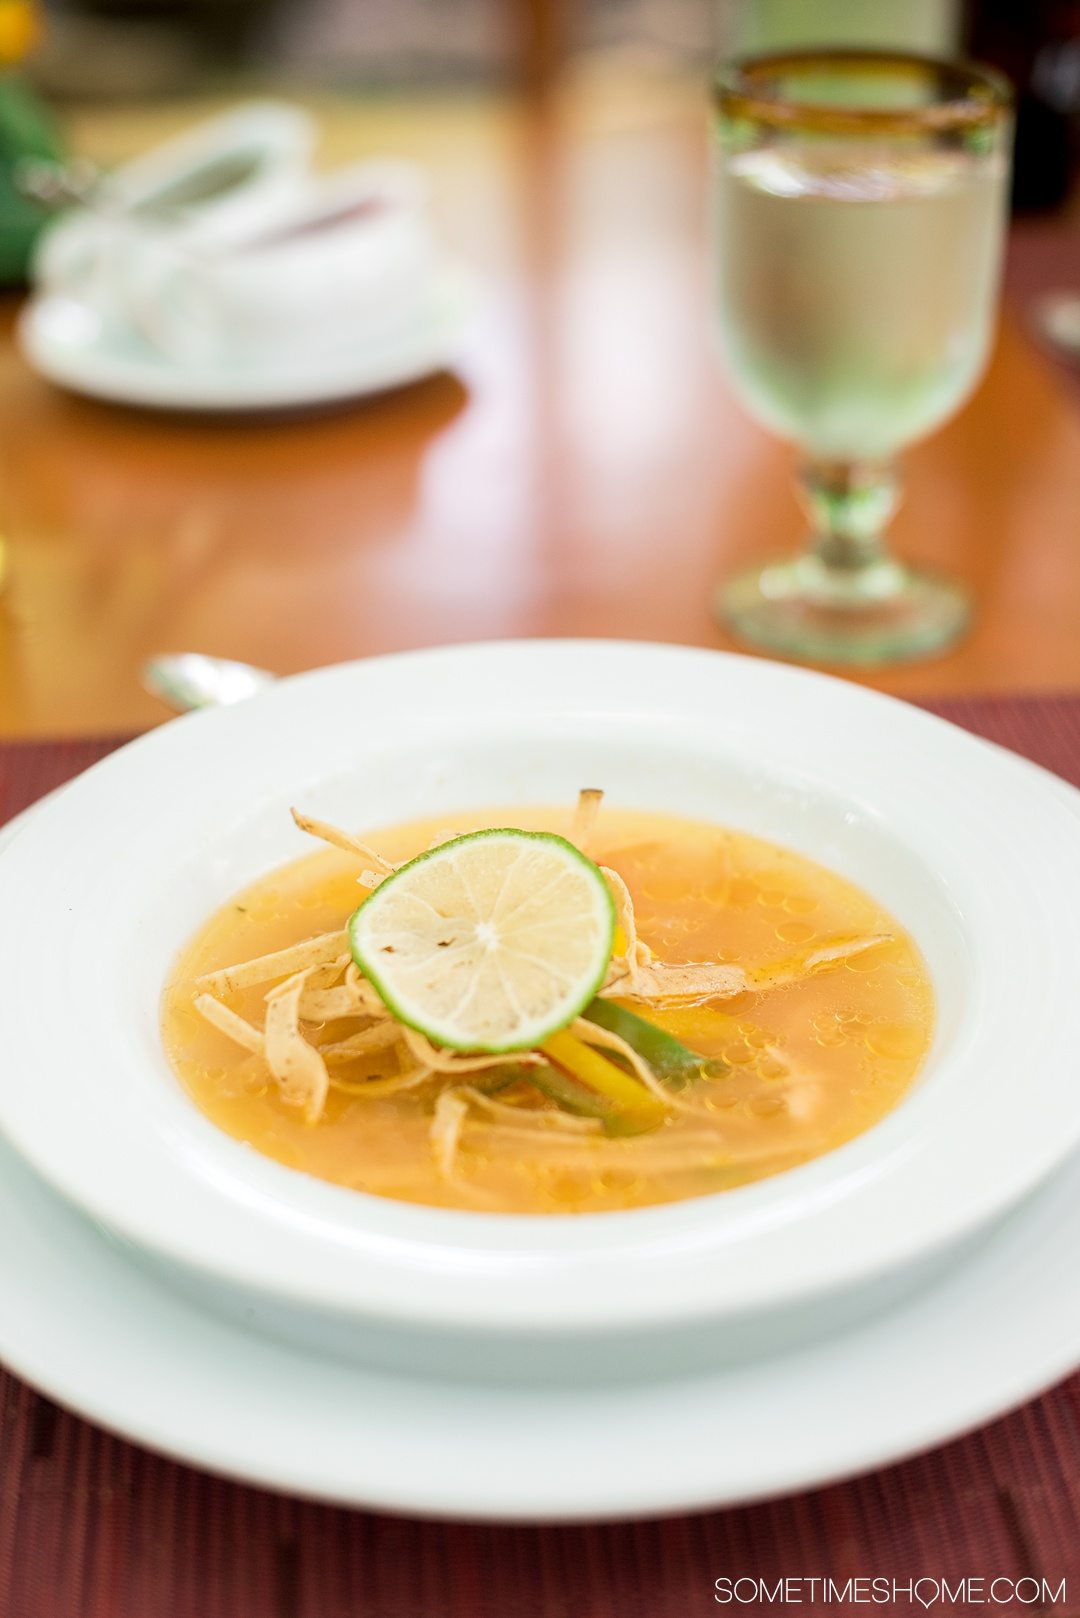 Unique Foods to Try in the Yucatan Peninsula on Sometimes Home travel blog with photos and descriptions of the meals. Picture of Sopa de Lima, a chicken broth based lime soup with red pepper and tortilla strips.